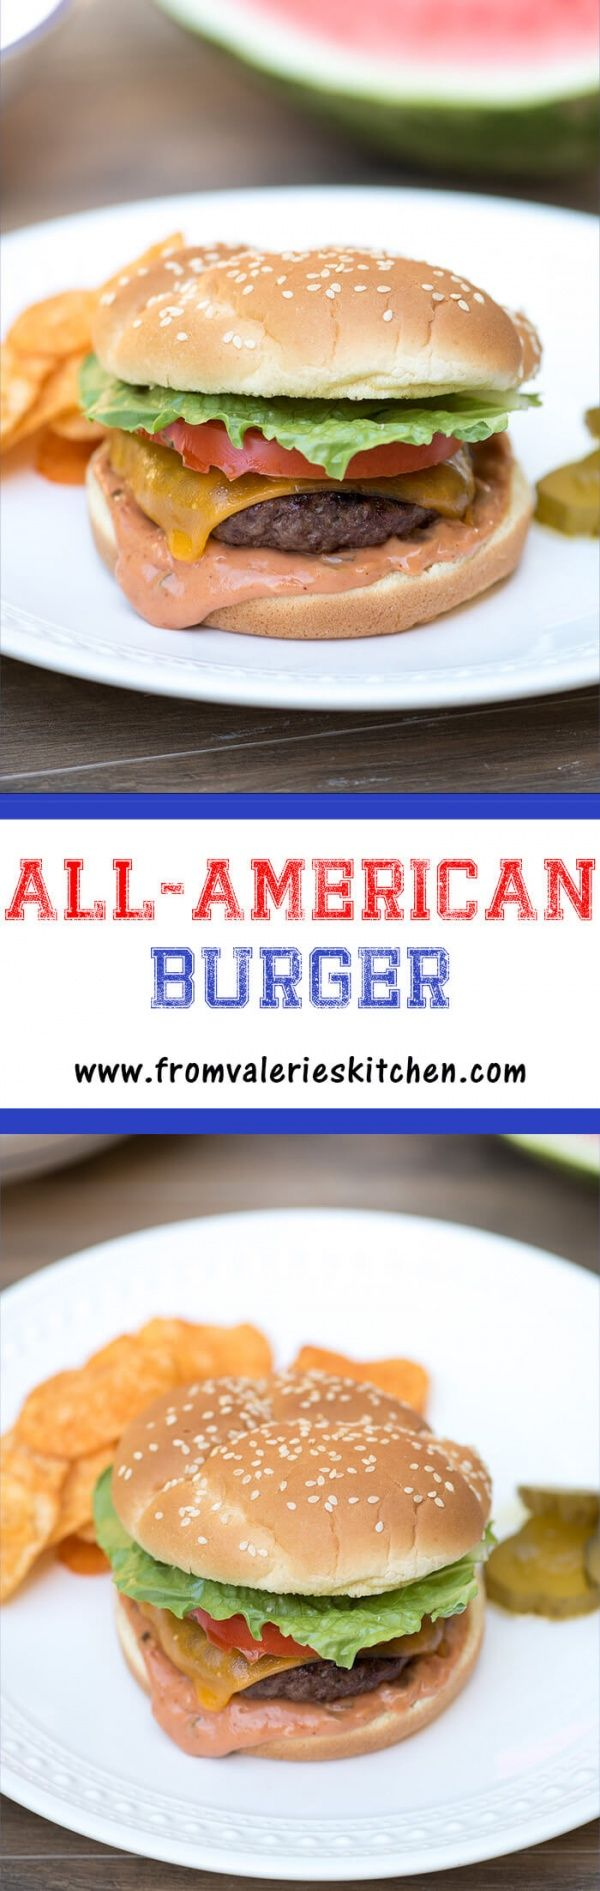 A grilled beef patty with melted sharp cheddar cheese on a toasted bun with a creamy, smoky burger sauce.The All-American Burger is a summertime classic! ~ #burgertour #ad